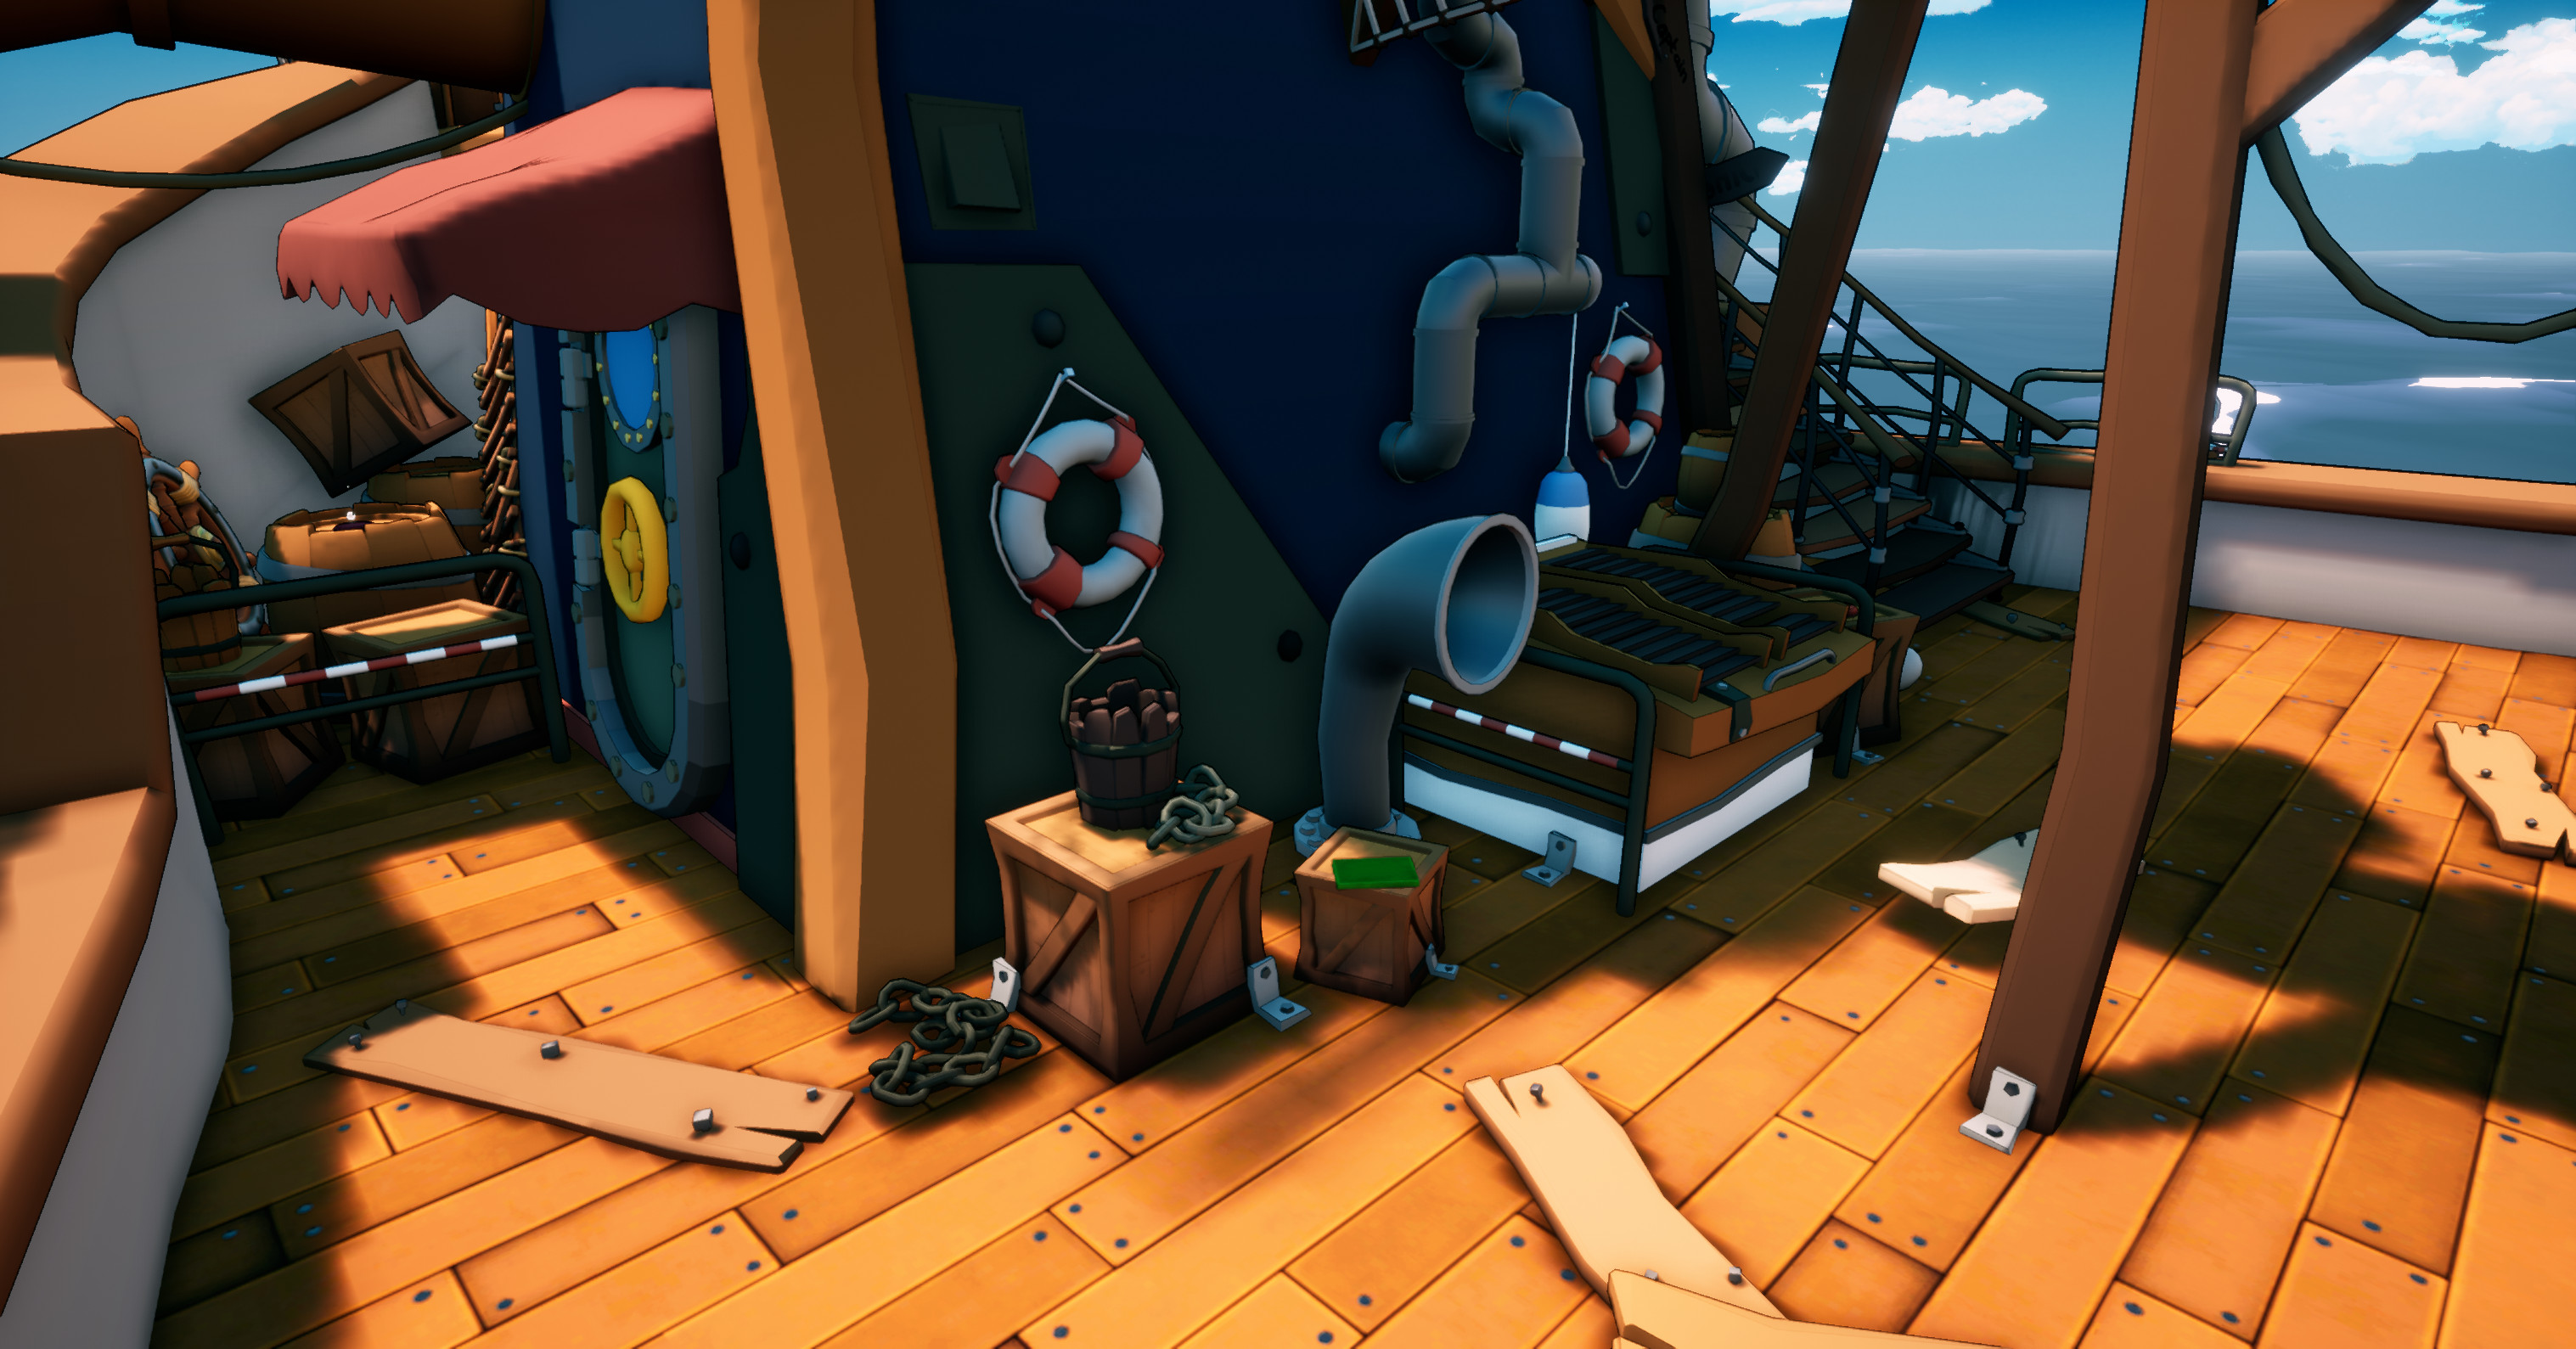 Part of the deck that shows more of the props that I made and how they were used in game.